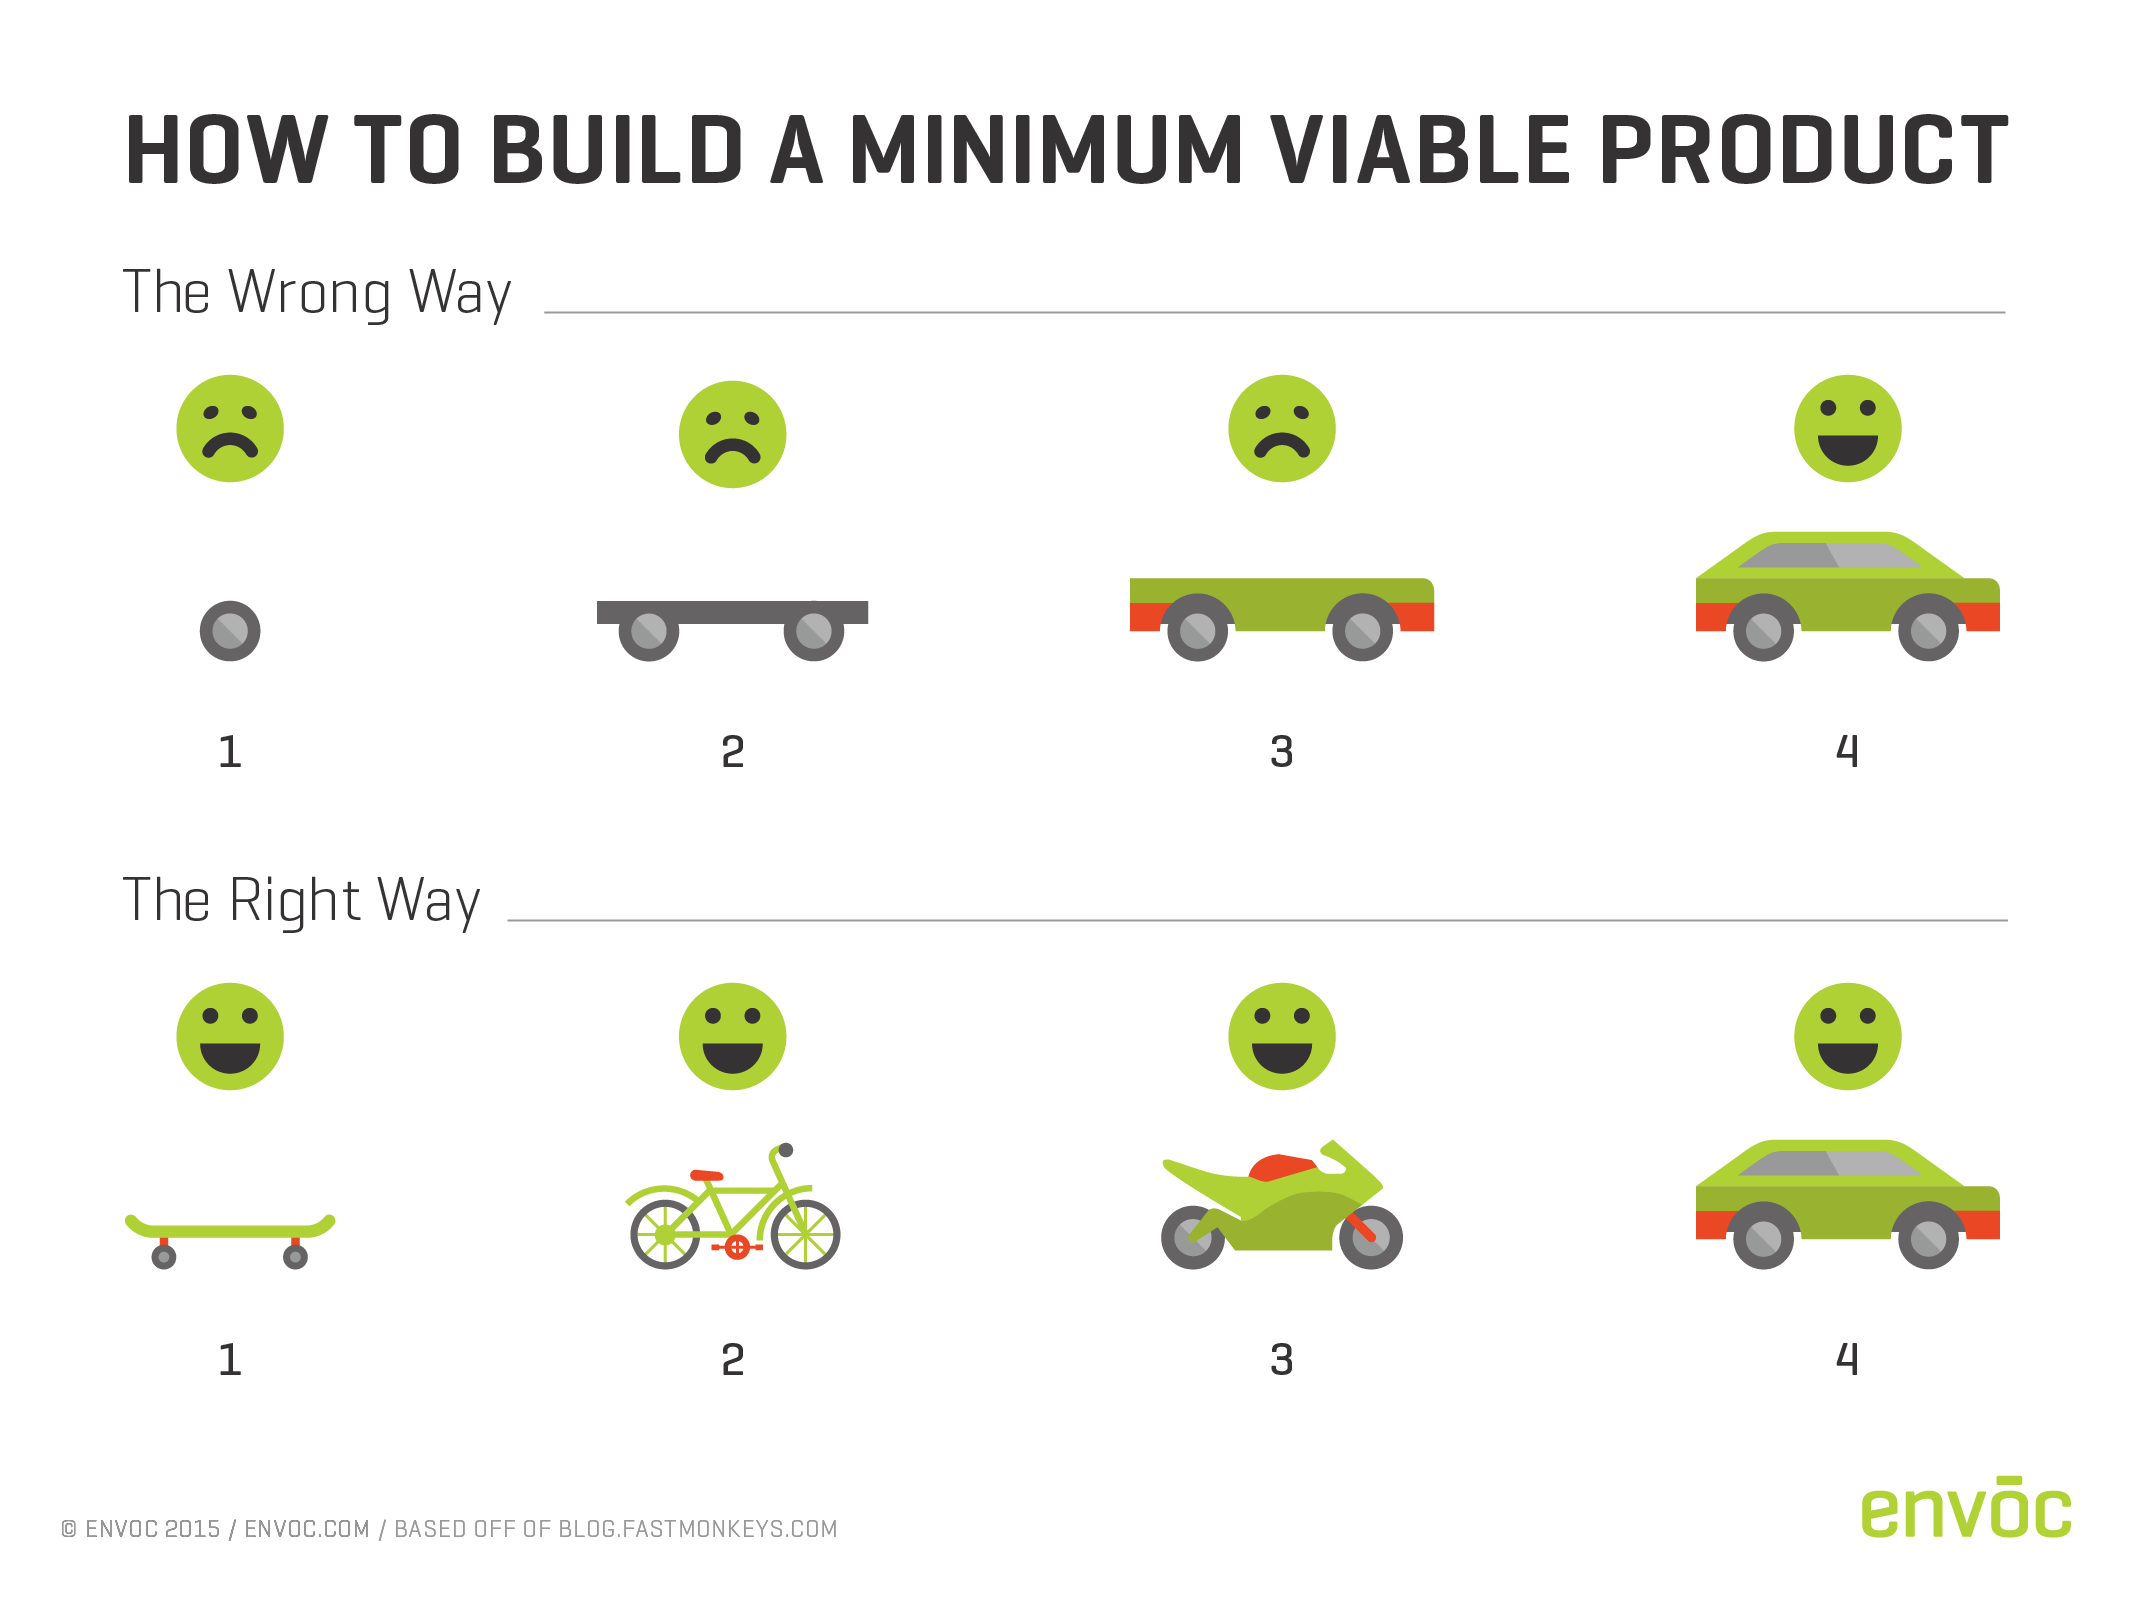 building minimal viable products - HD2133×1600